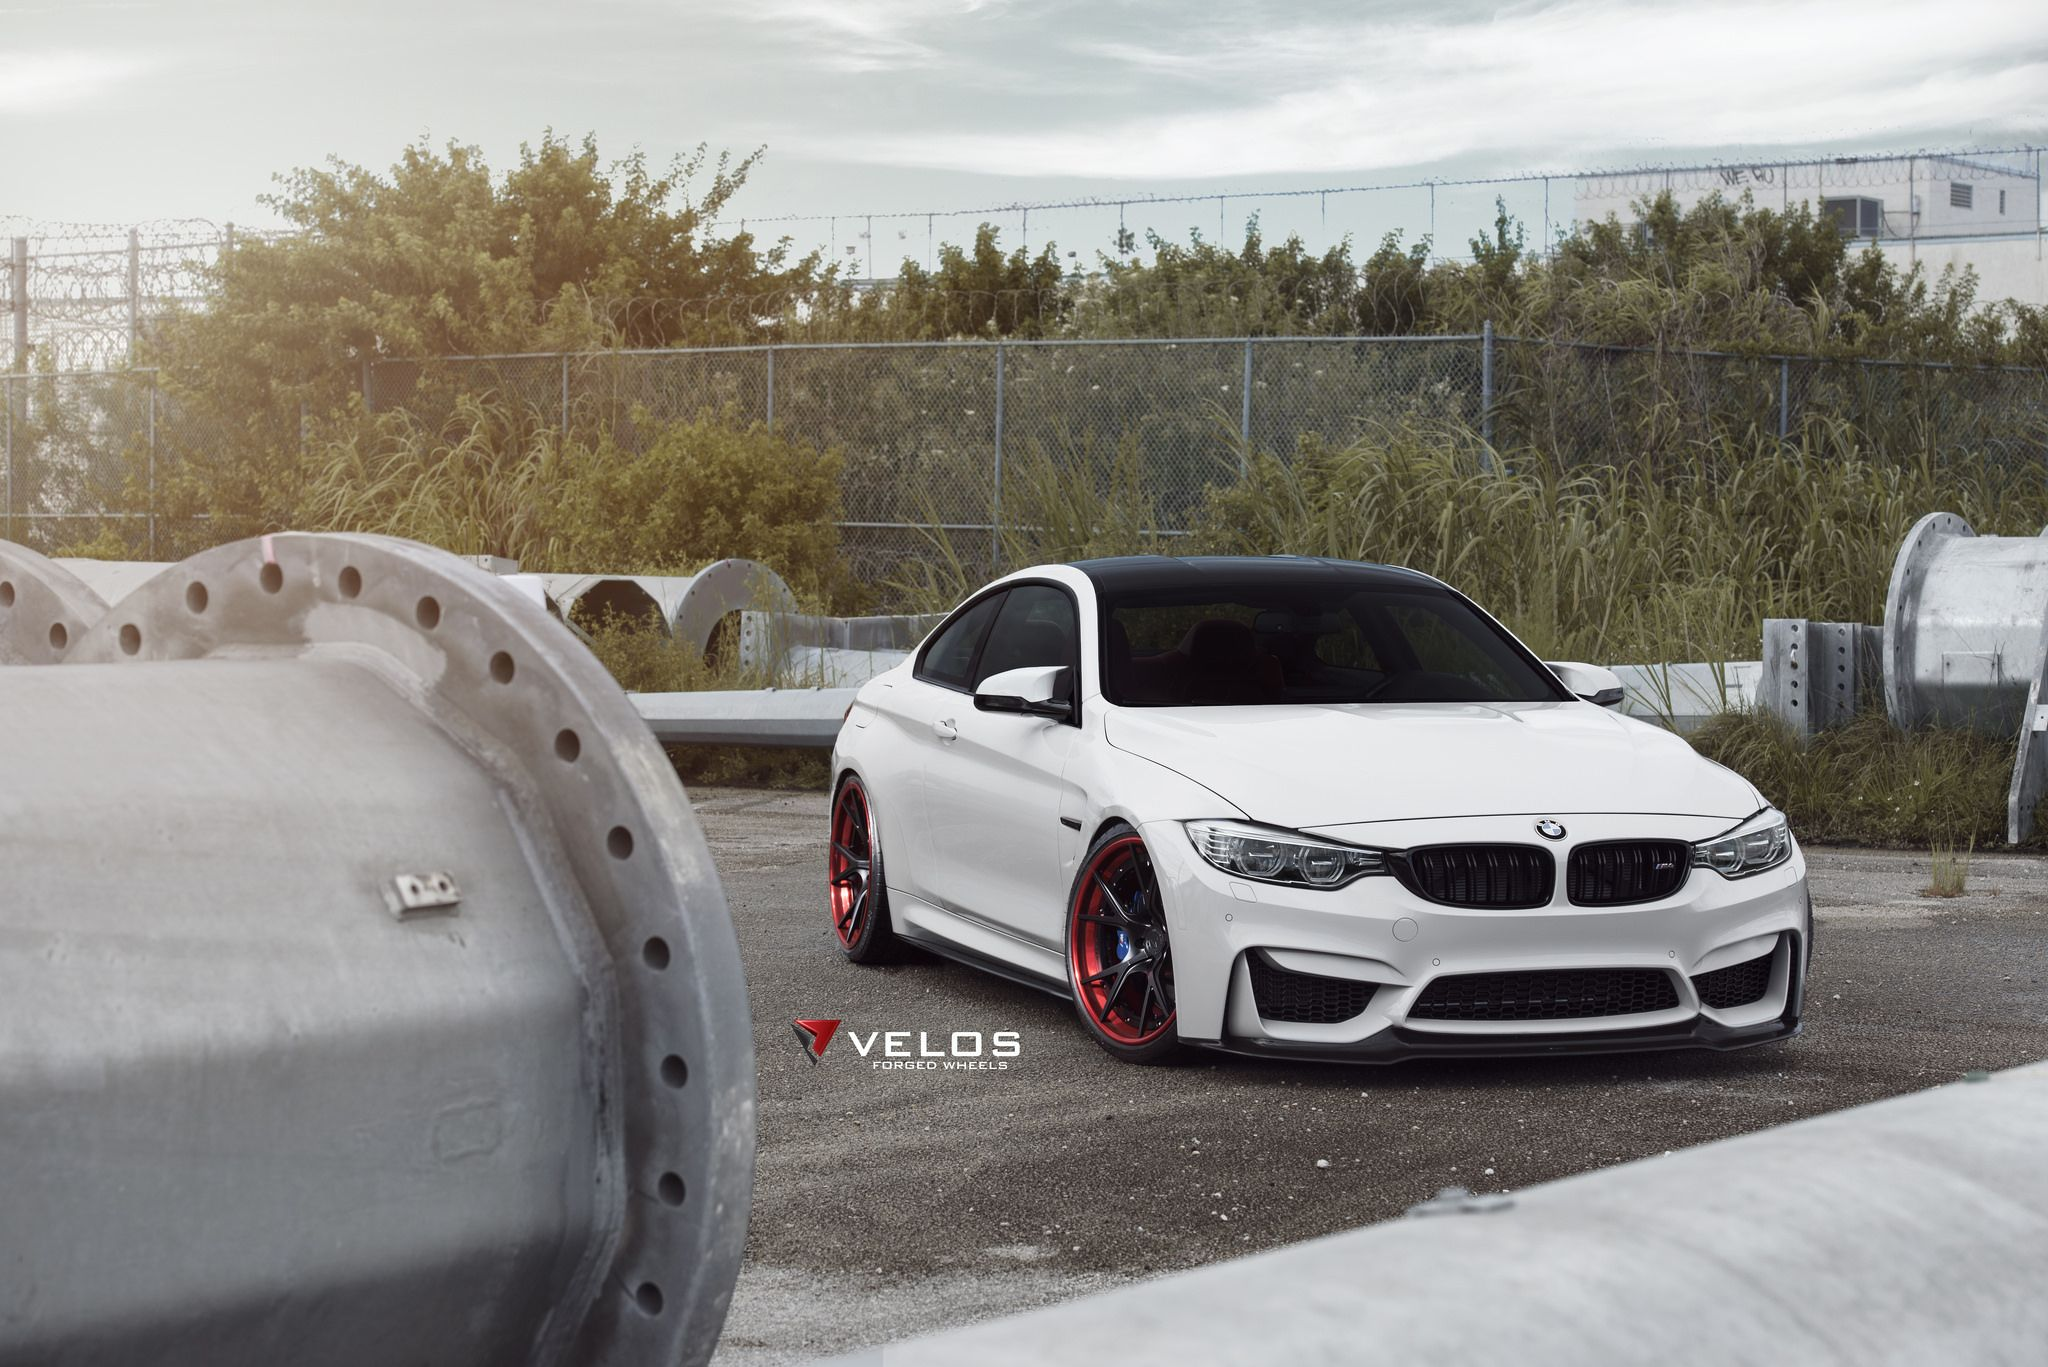 Alpine white bmw f82 m4 looks aggressive with red accented velos wheels http